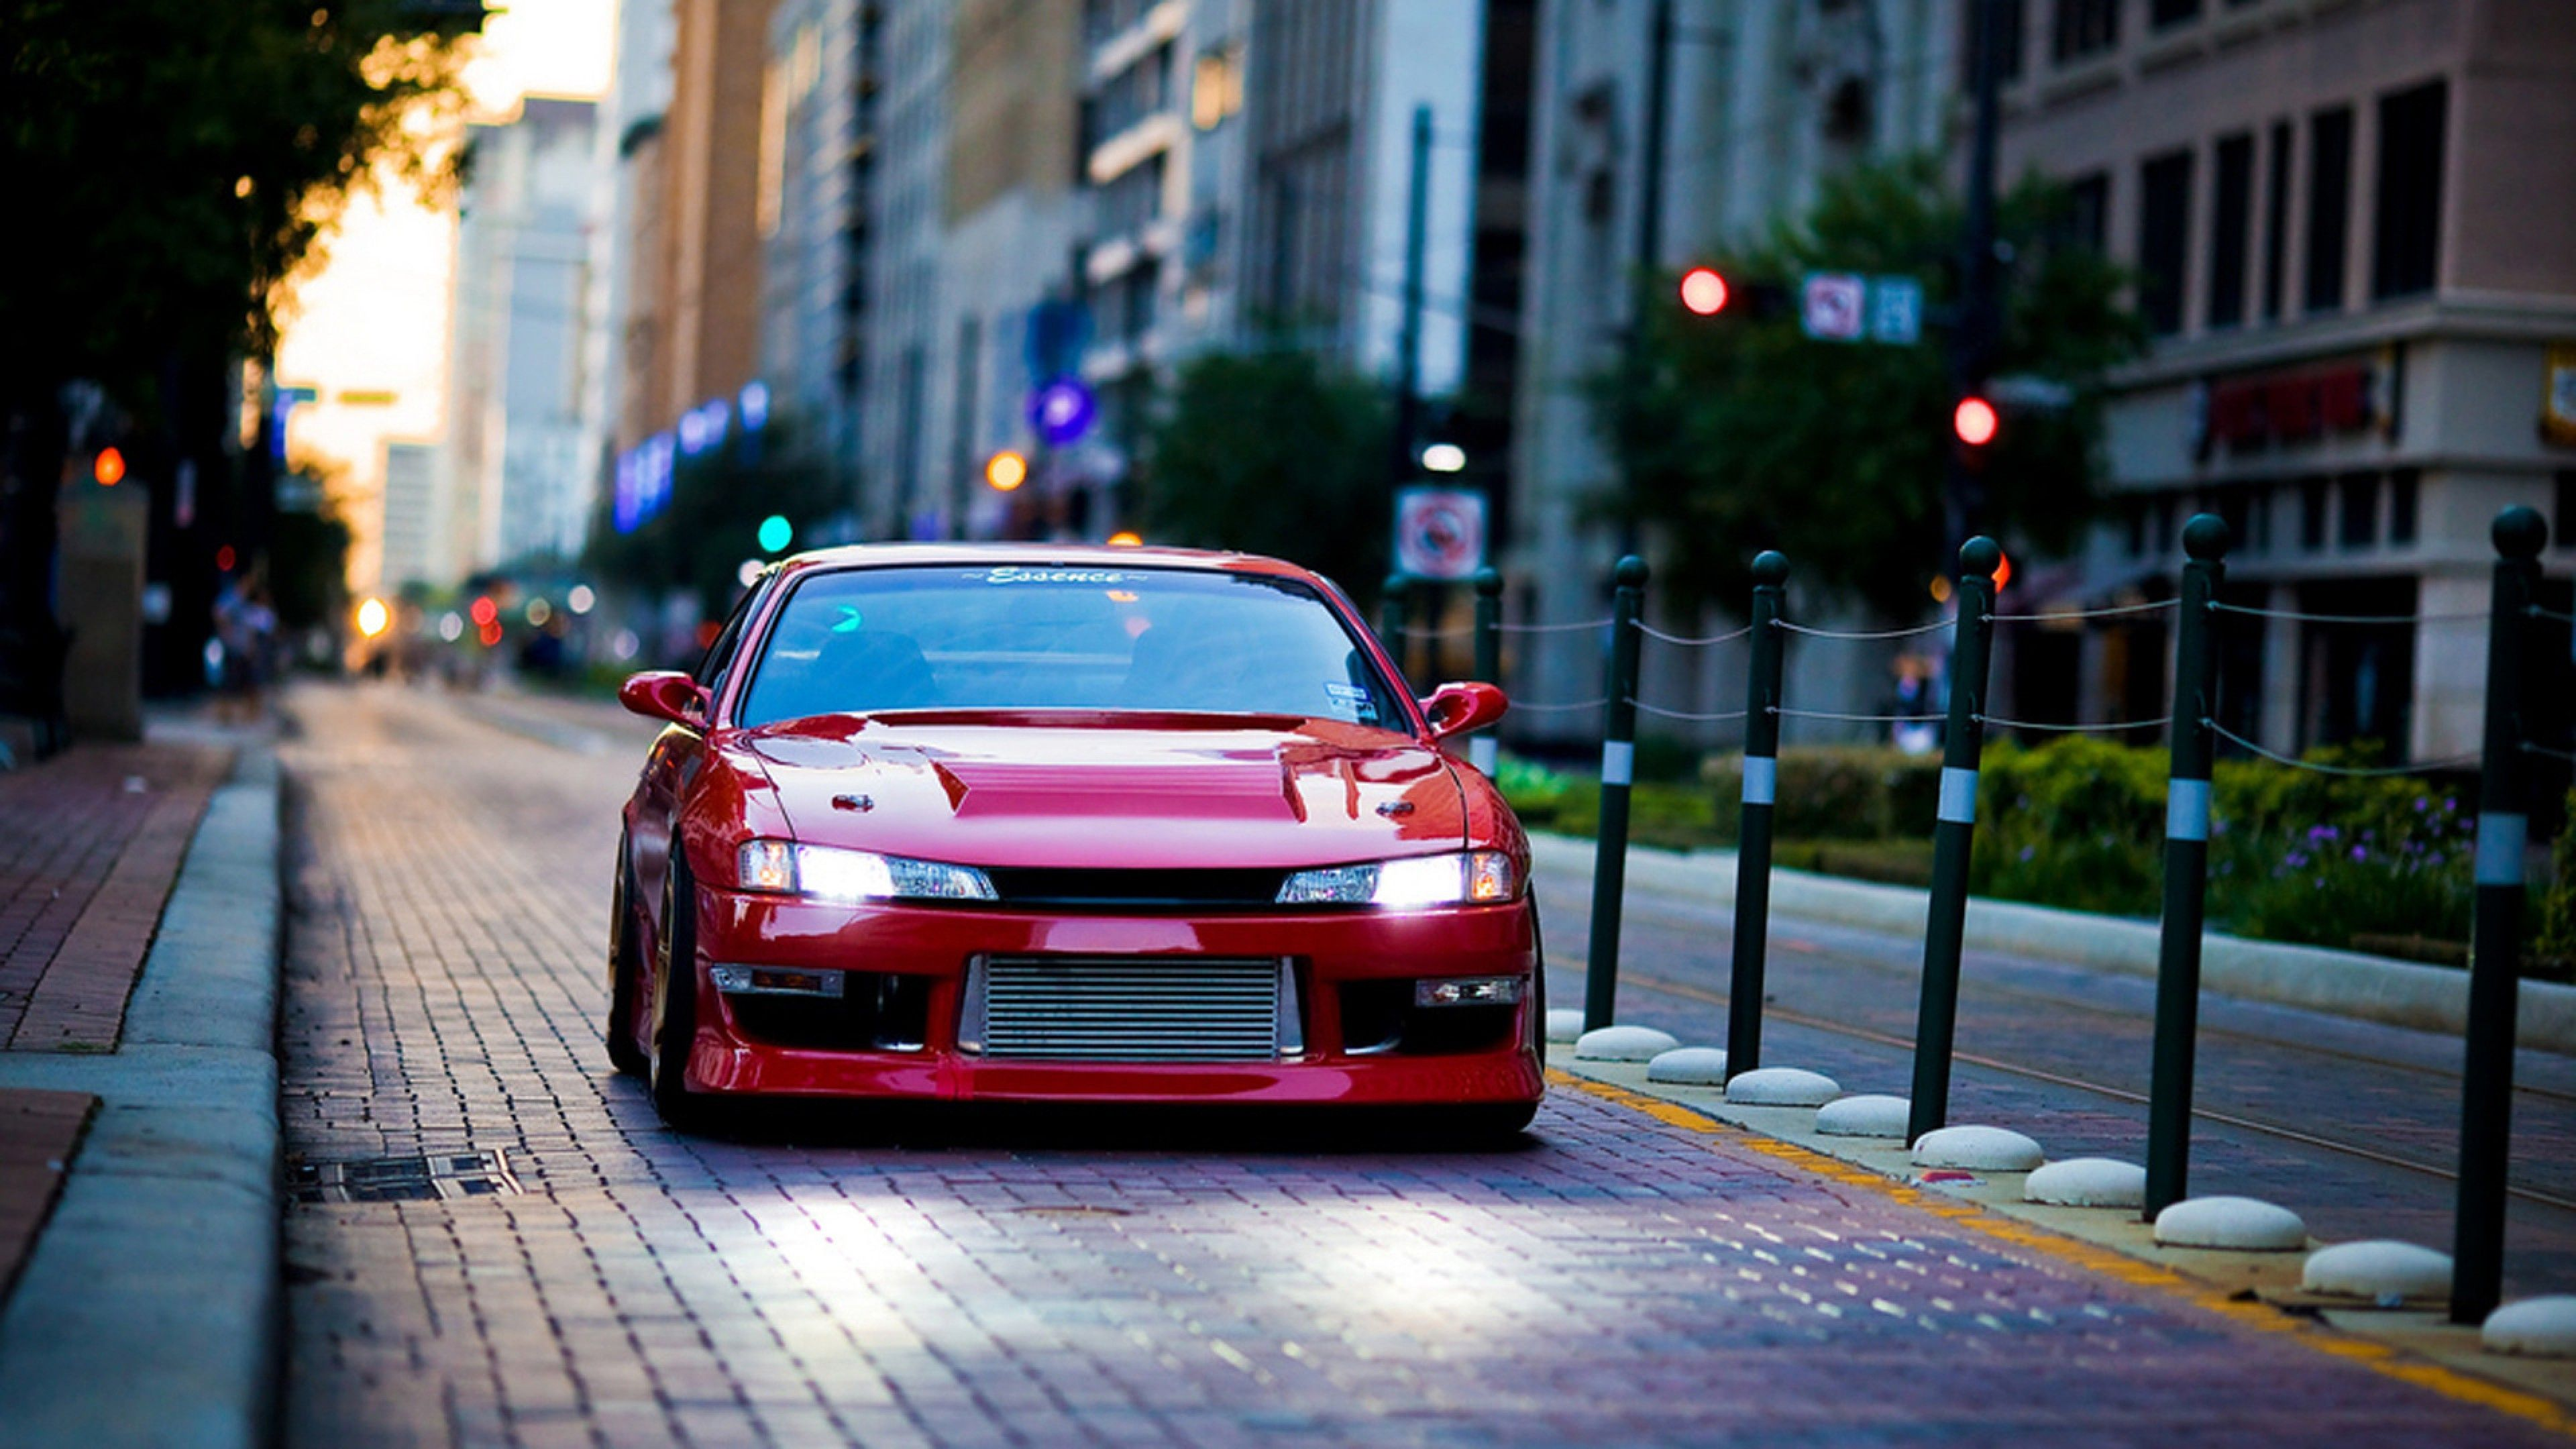 Wallpapers Car Nissan Silvia S14 Automotive Lighting Nissan